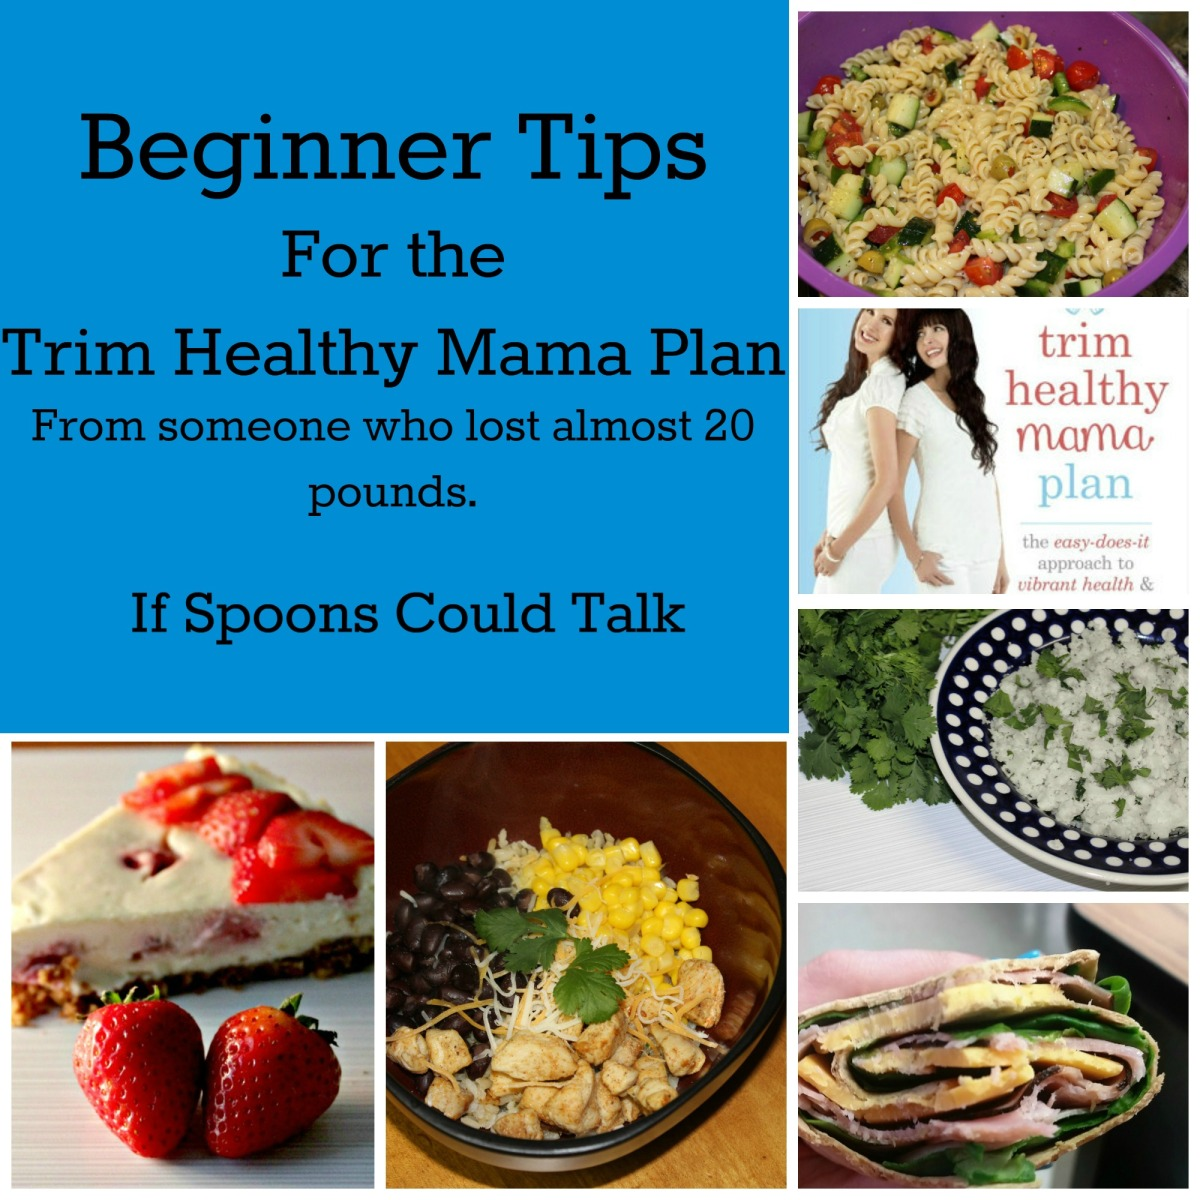 Trim Healthy Mama Tips for Beginners - If Spoons Could Talk